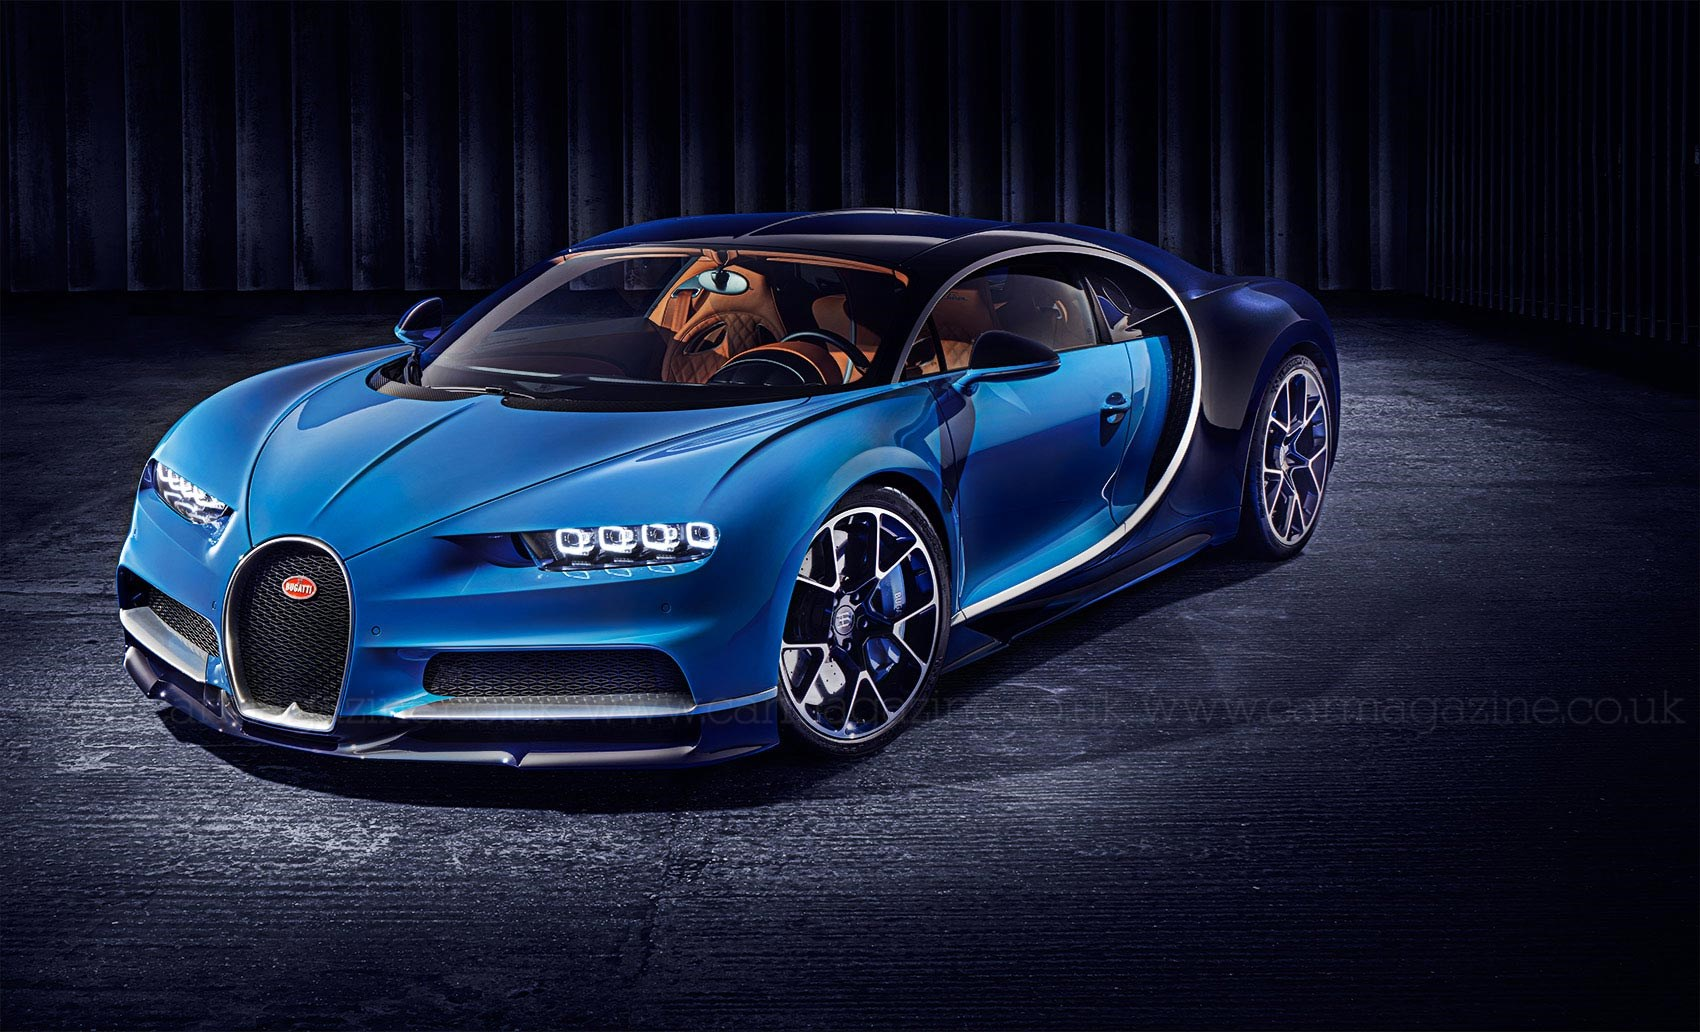 Www Hummer Car Wallpapers Com An Exclusive In Depth Look At The New Bugatti Chiron By